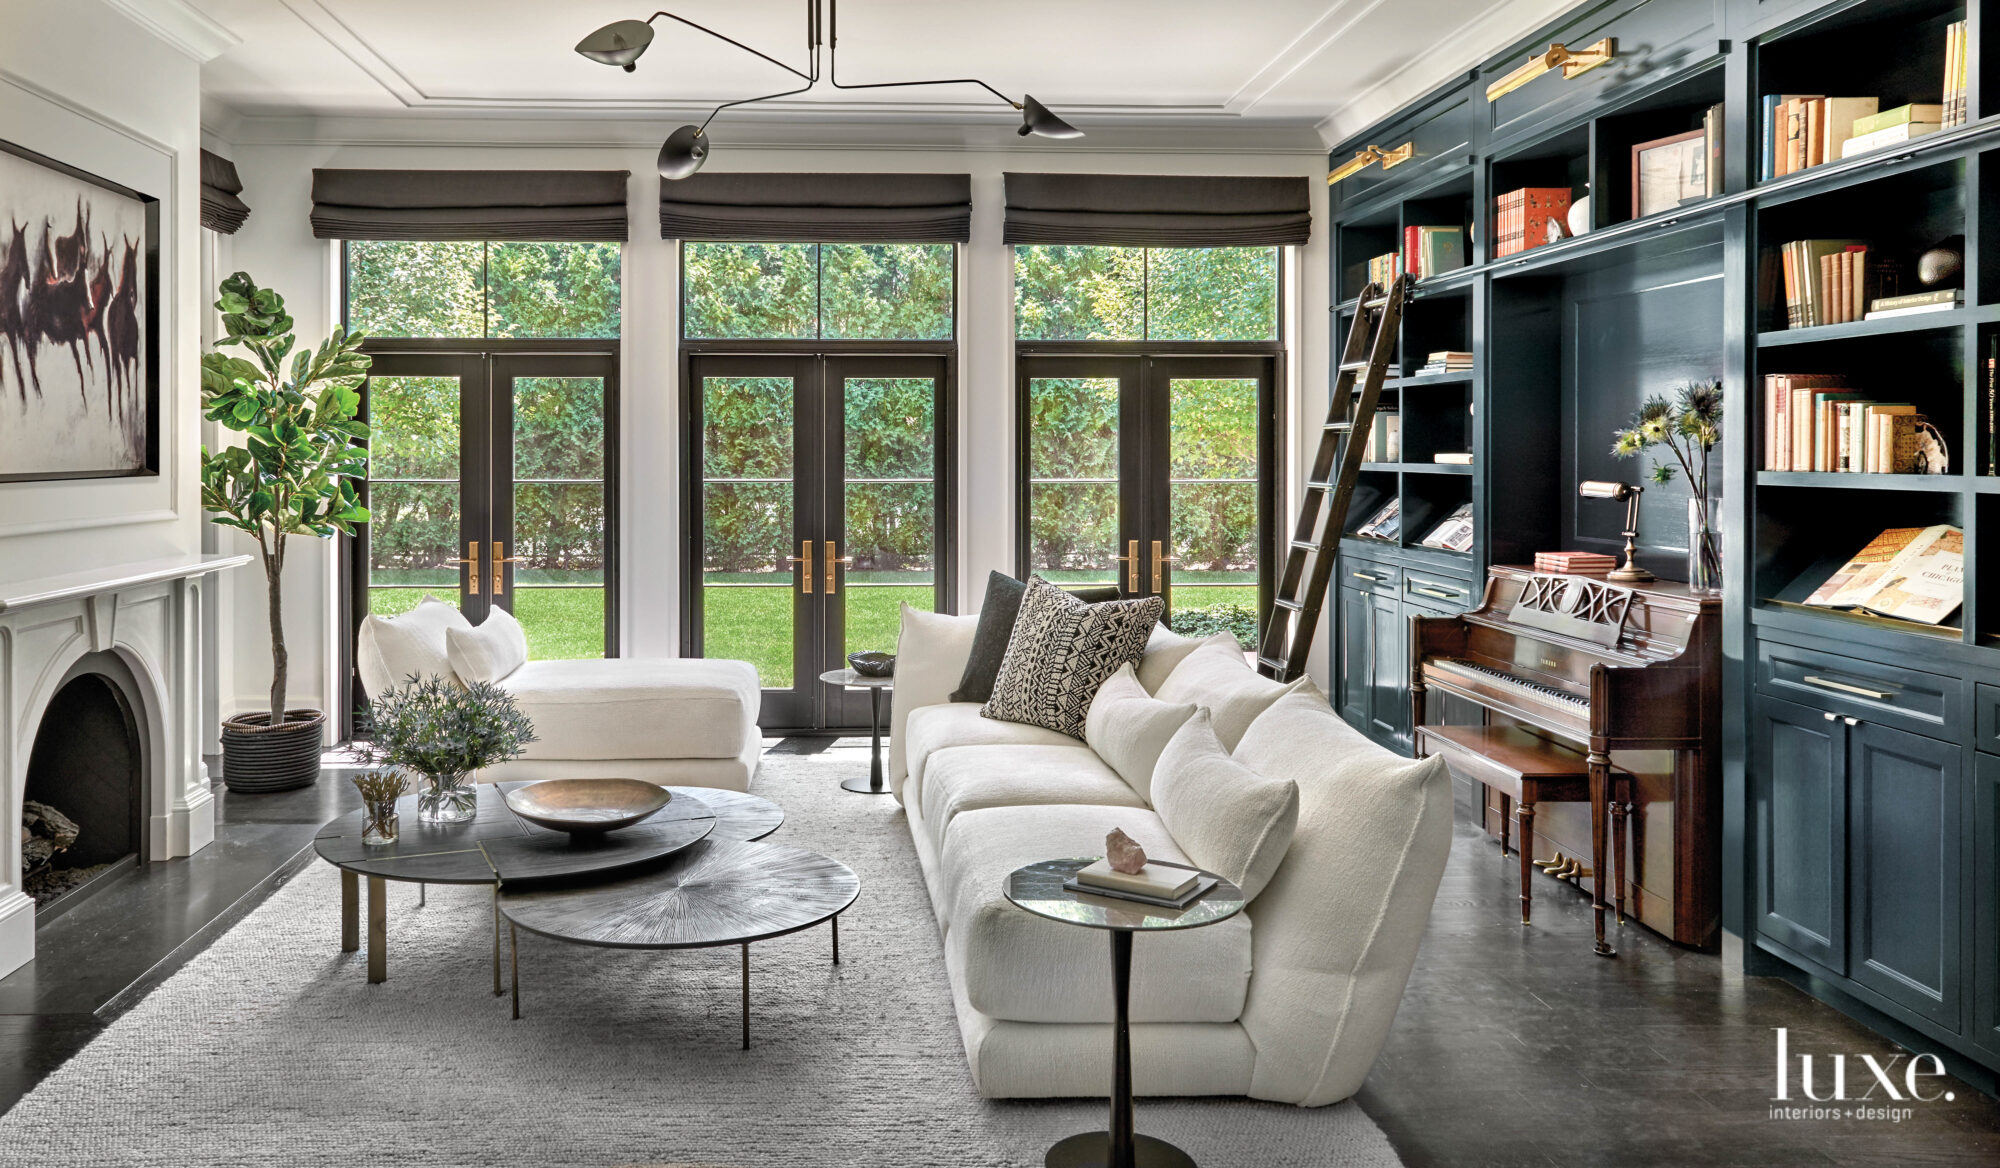 The living room with built-in cabinetry along the back wall painted in a gray-blue tone.